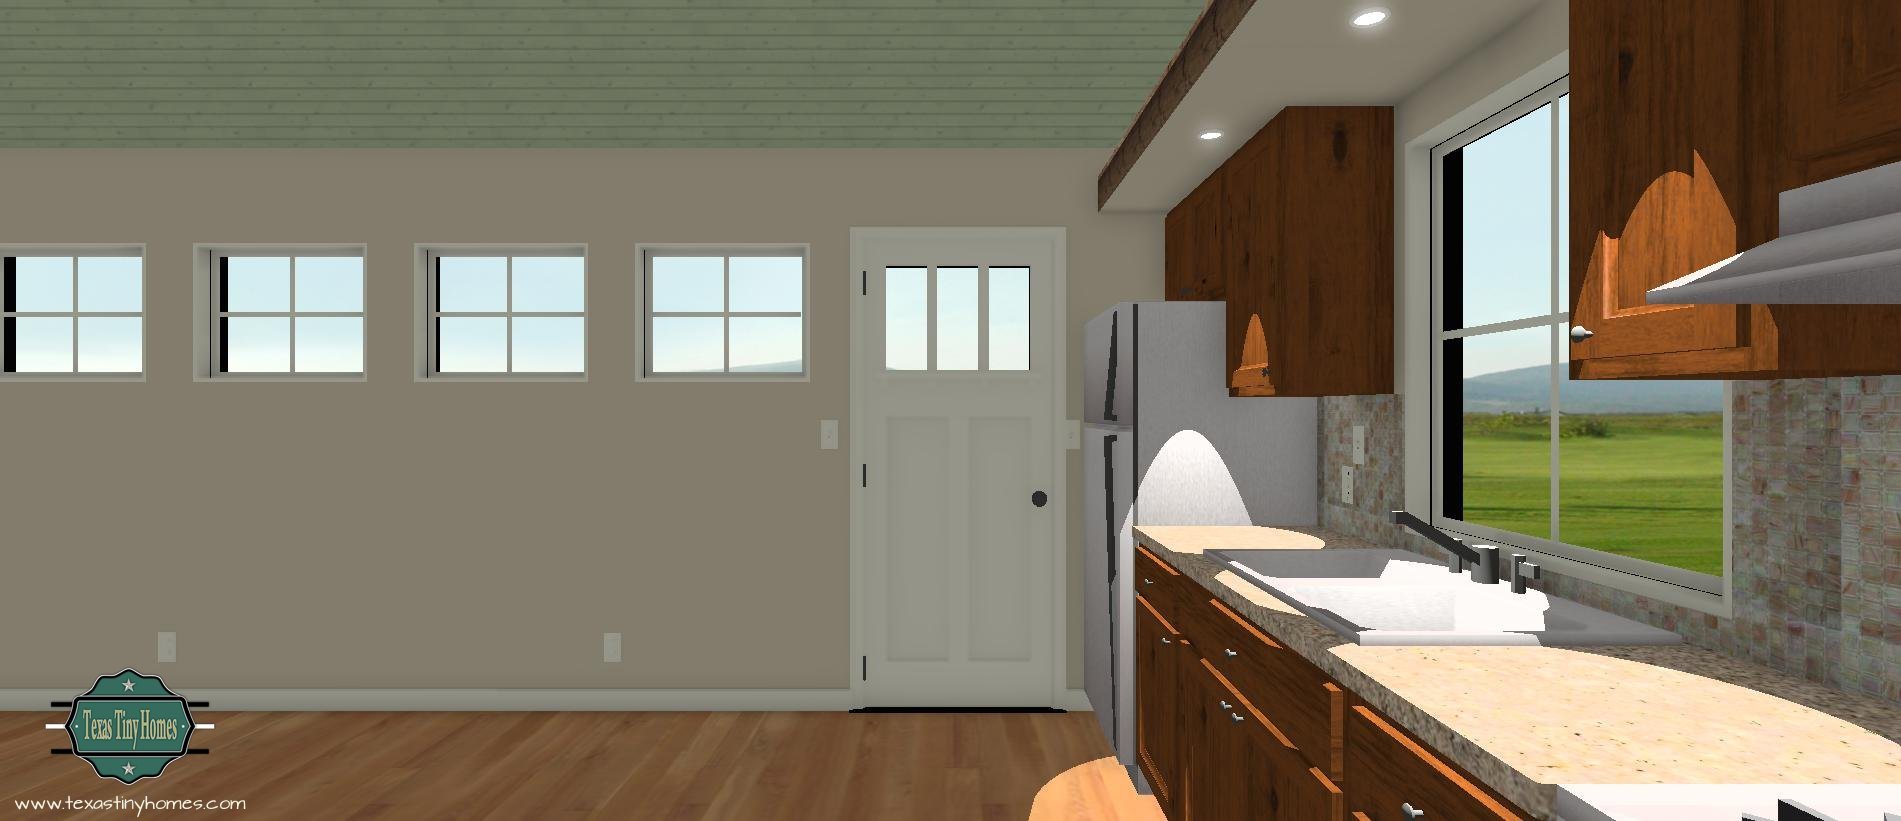 Kitchen Side View : Our first tiny home that can be shipped to you sneak peek